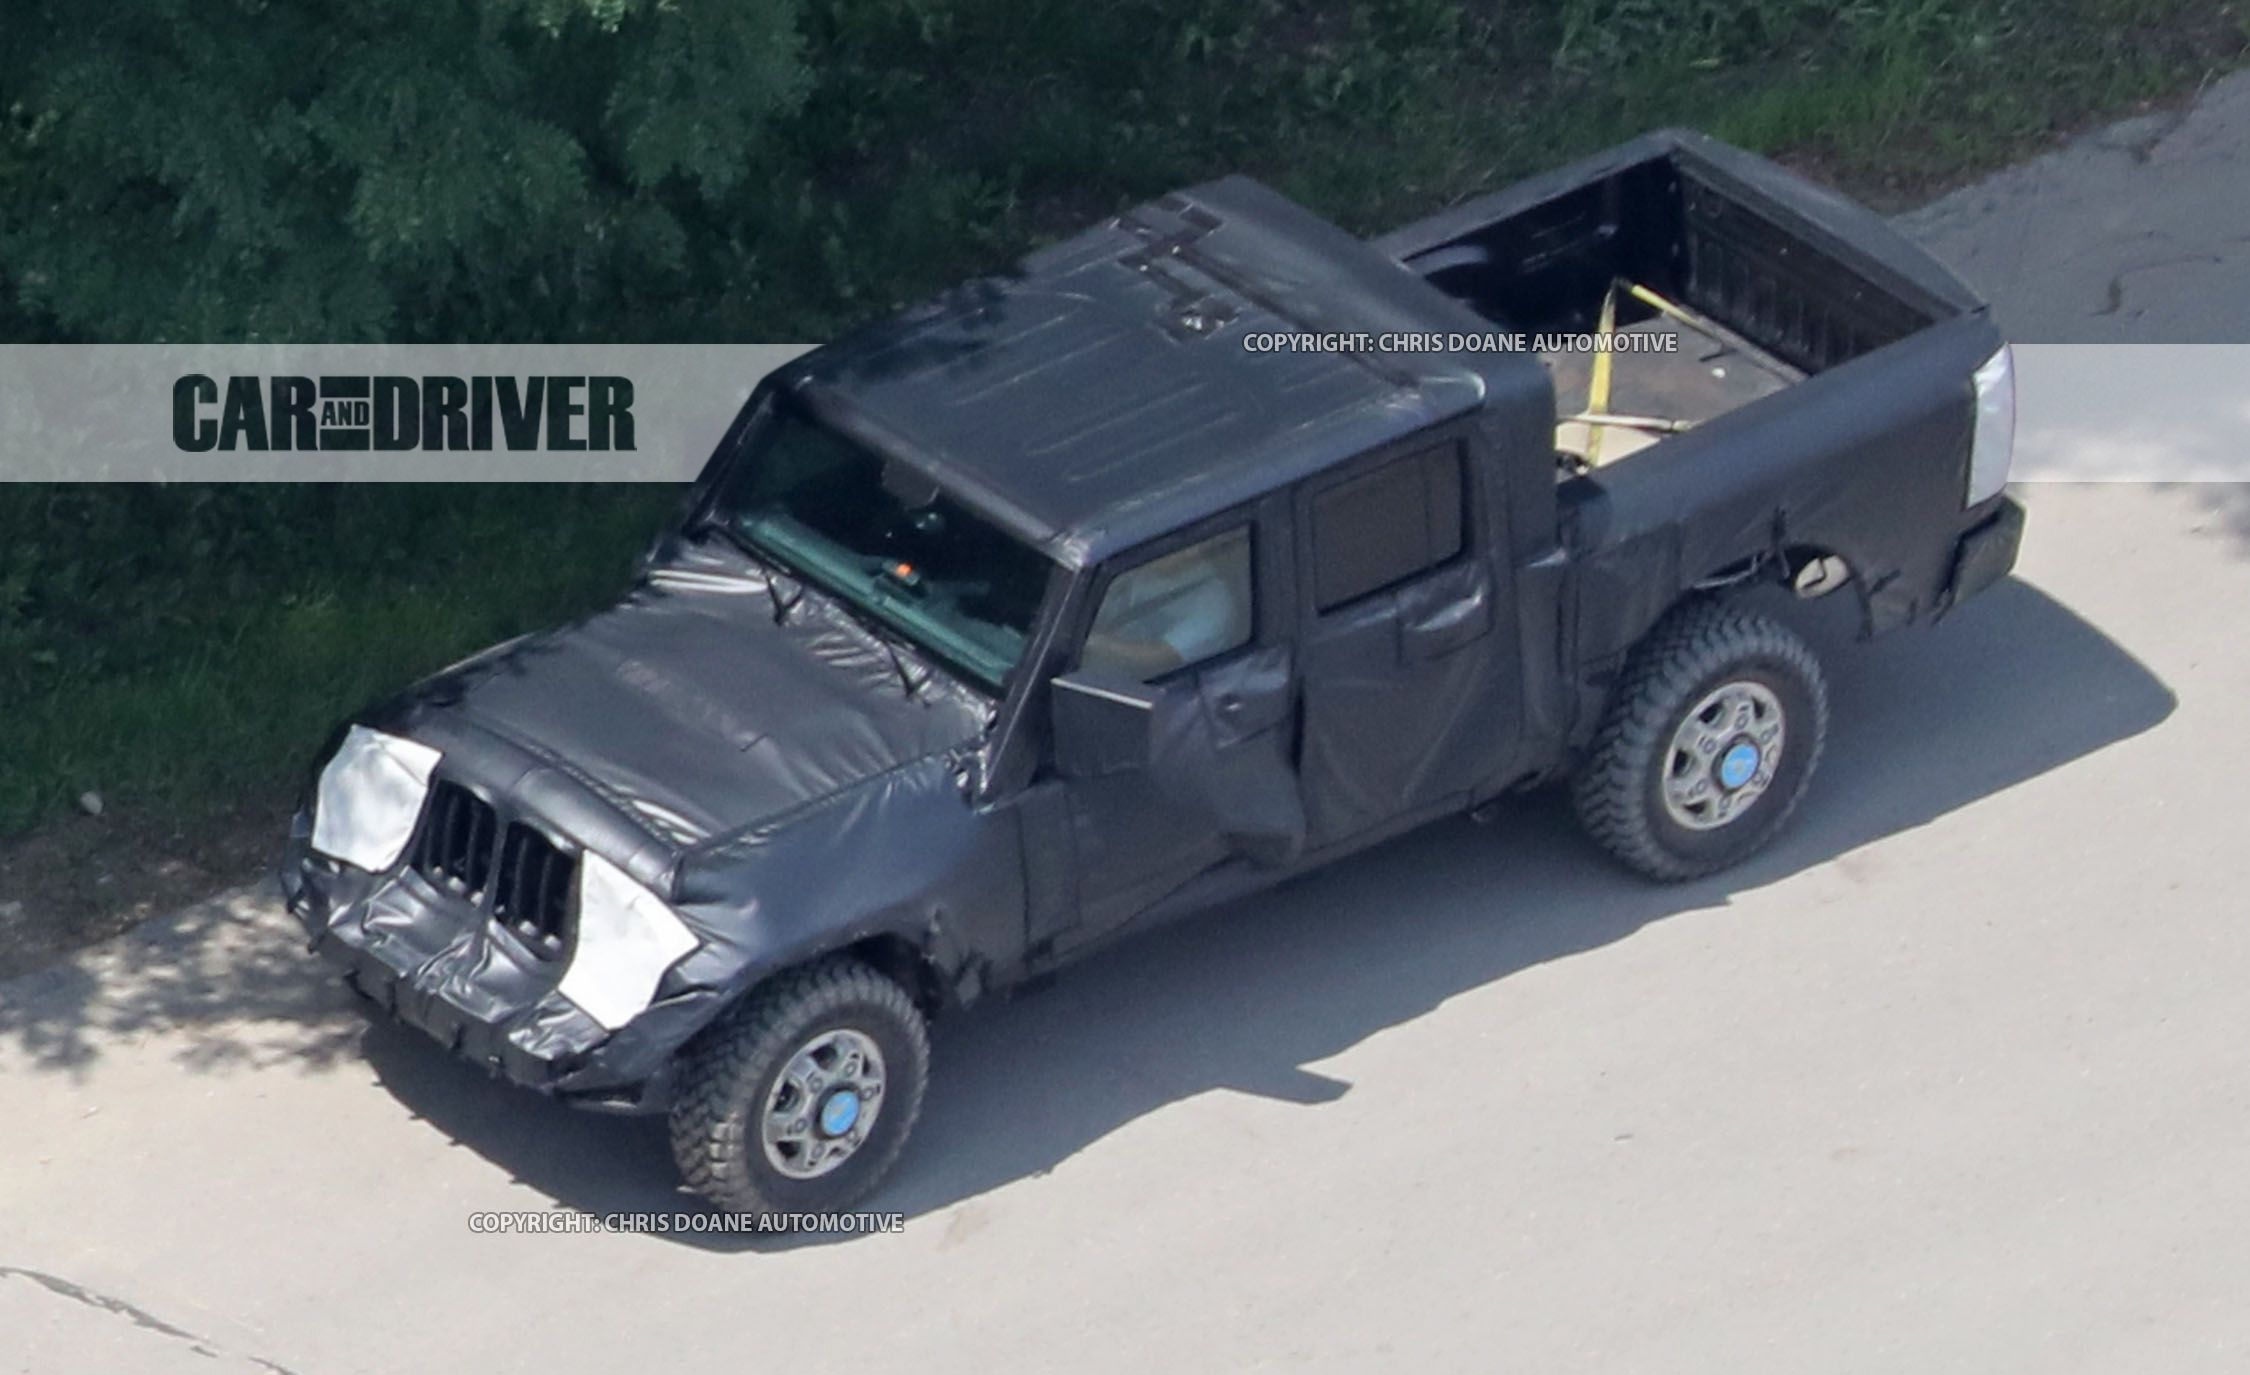 Jeep Wrangler Pickup Reviews Price Photos Pick Up 2015 Specs And Car Driver